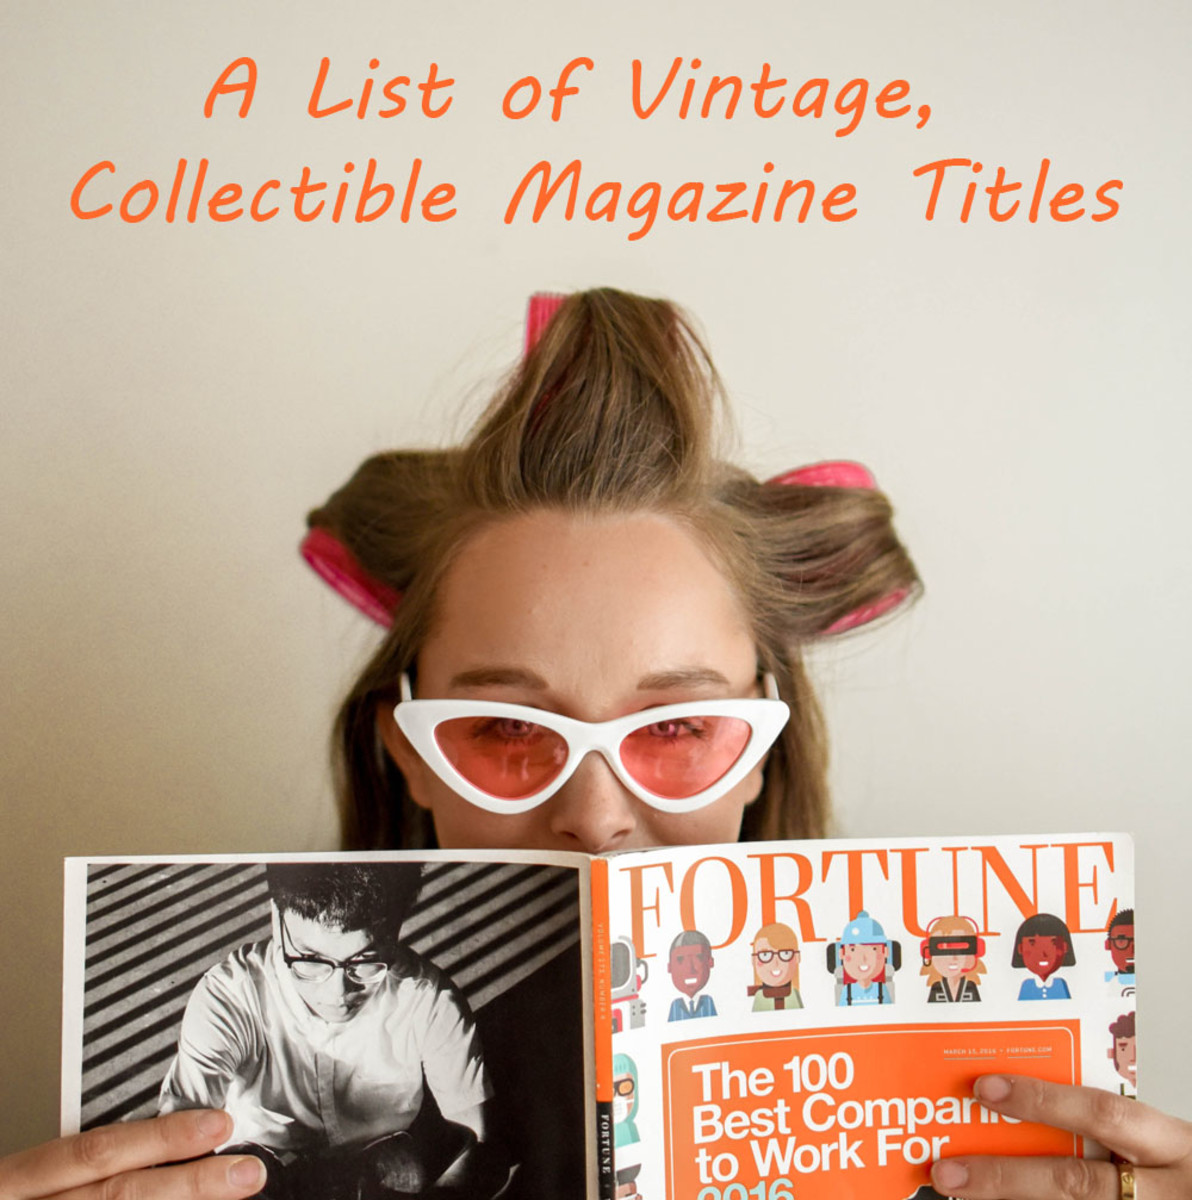 A List of Vintage, Collectible Magazine Titles